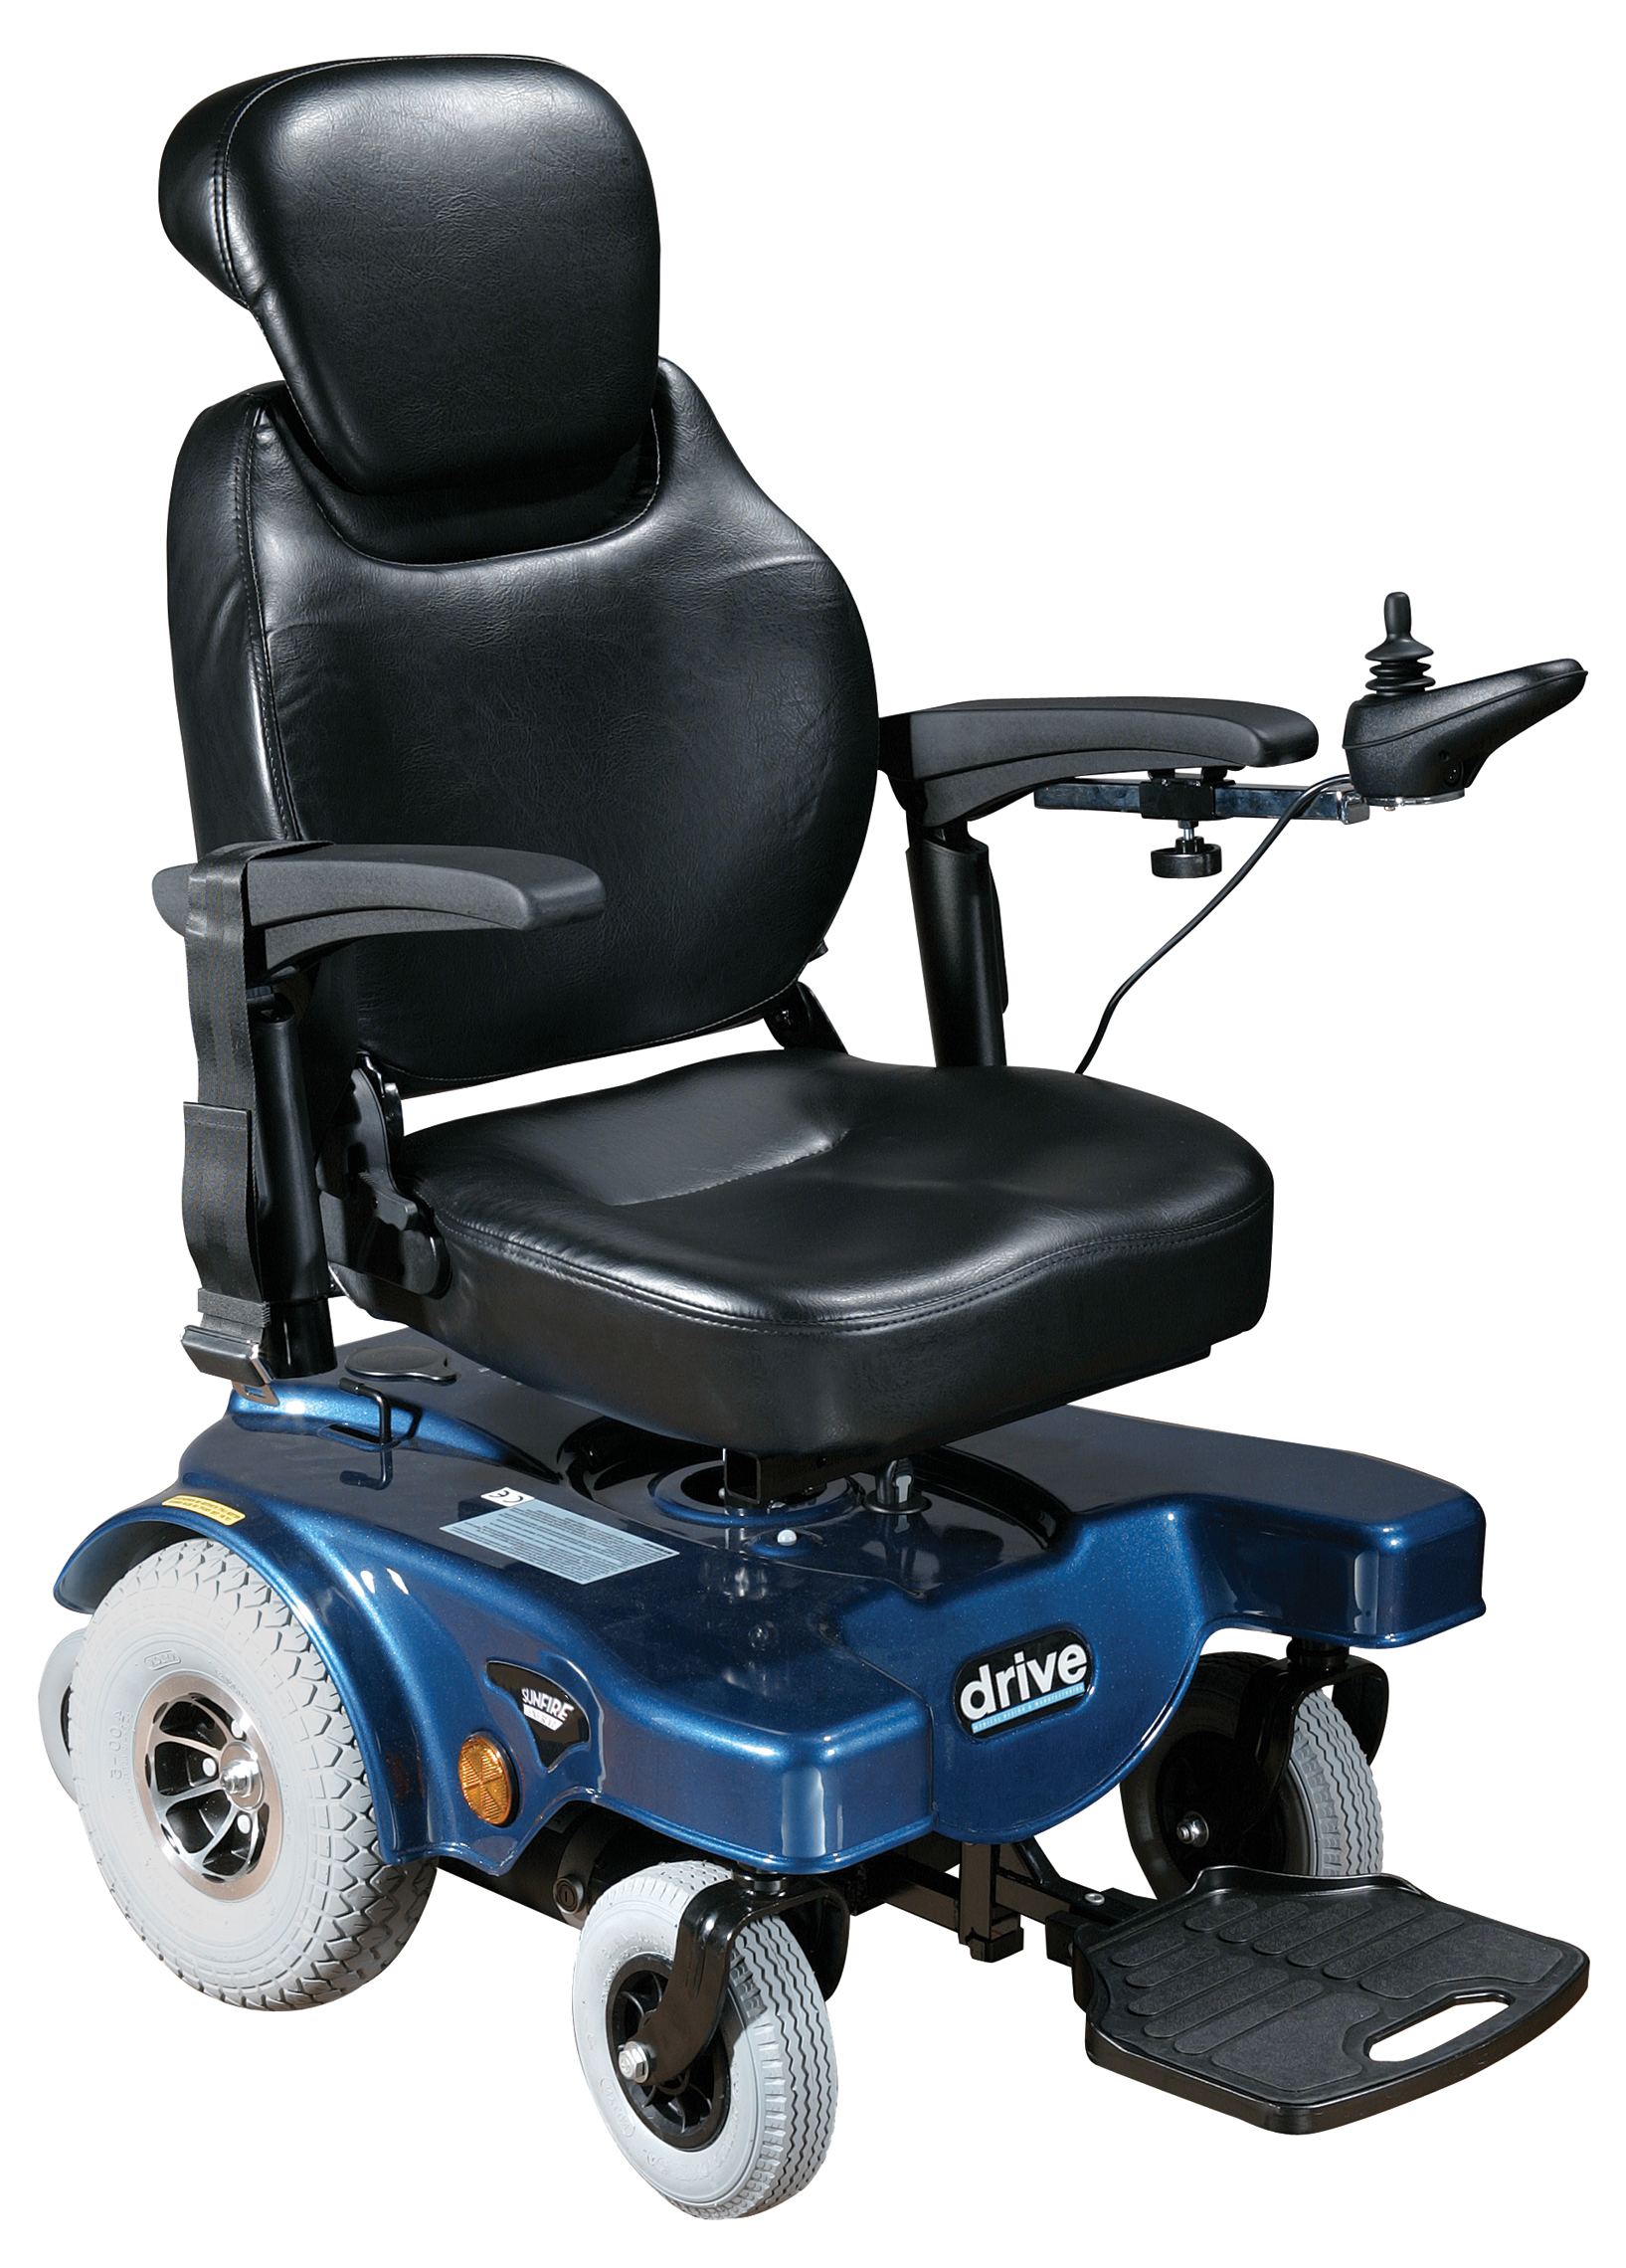 Drive Sunfire General Rear Wheel Drive Powered Wheelchair